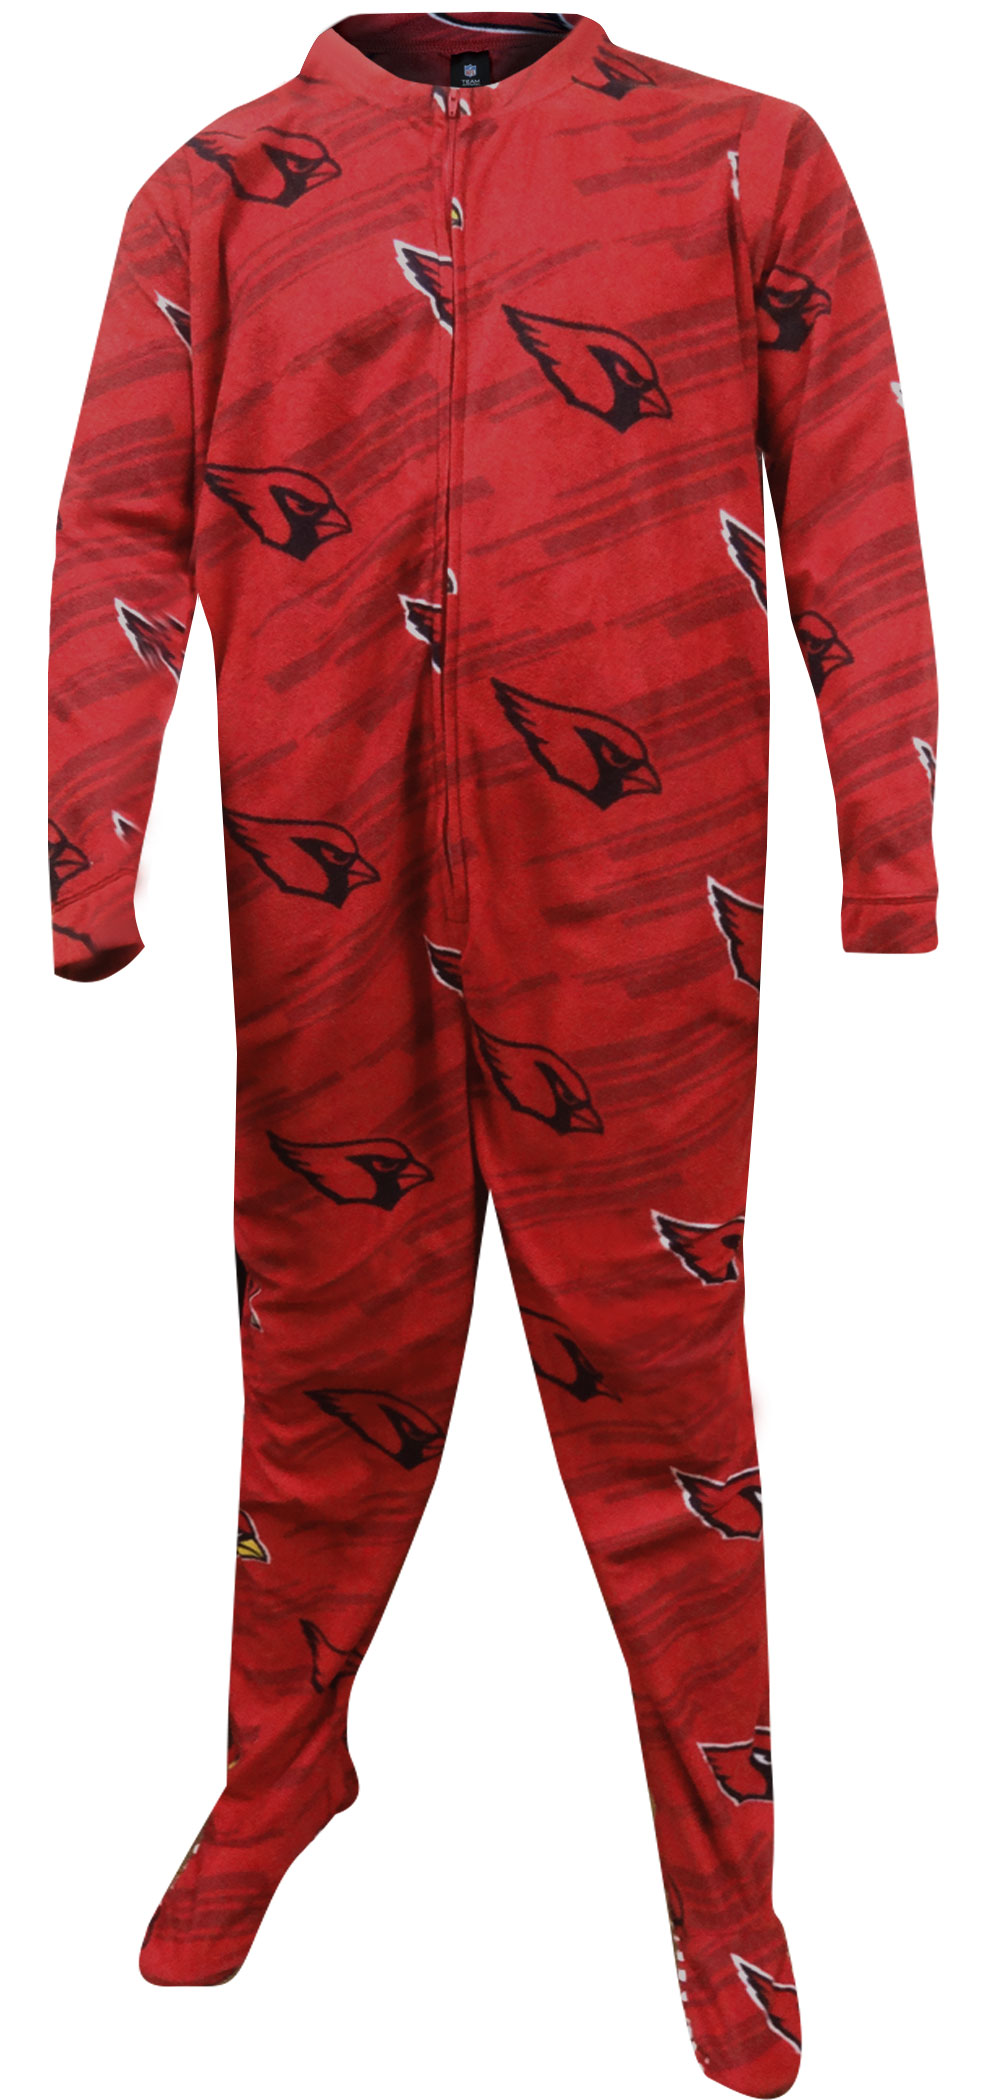 Image of Arizona Cardinals One Piece Footie Pajama for men